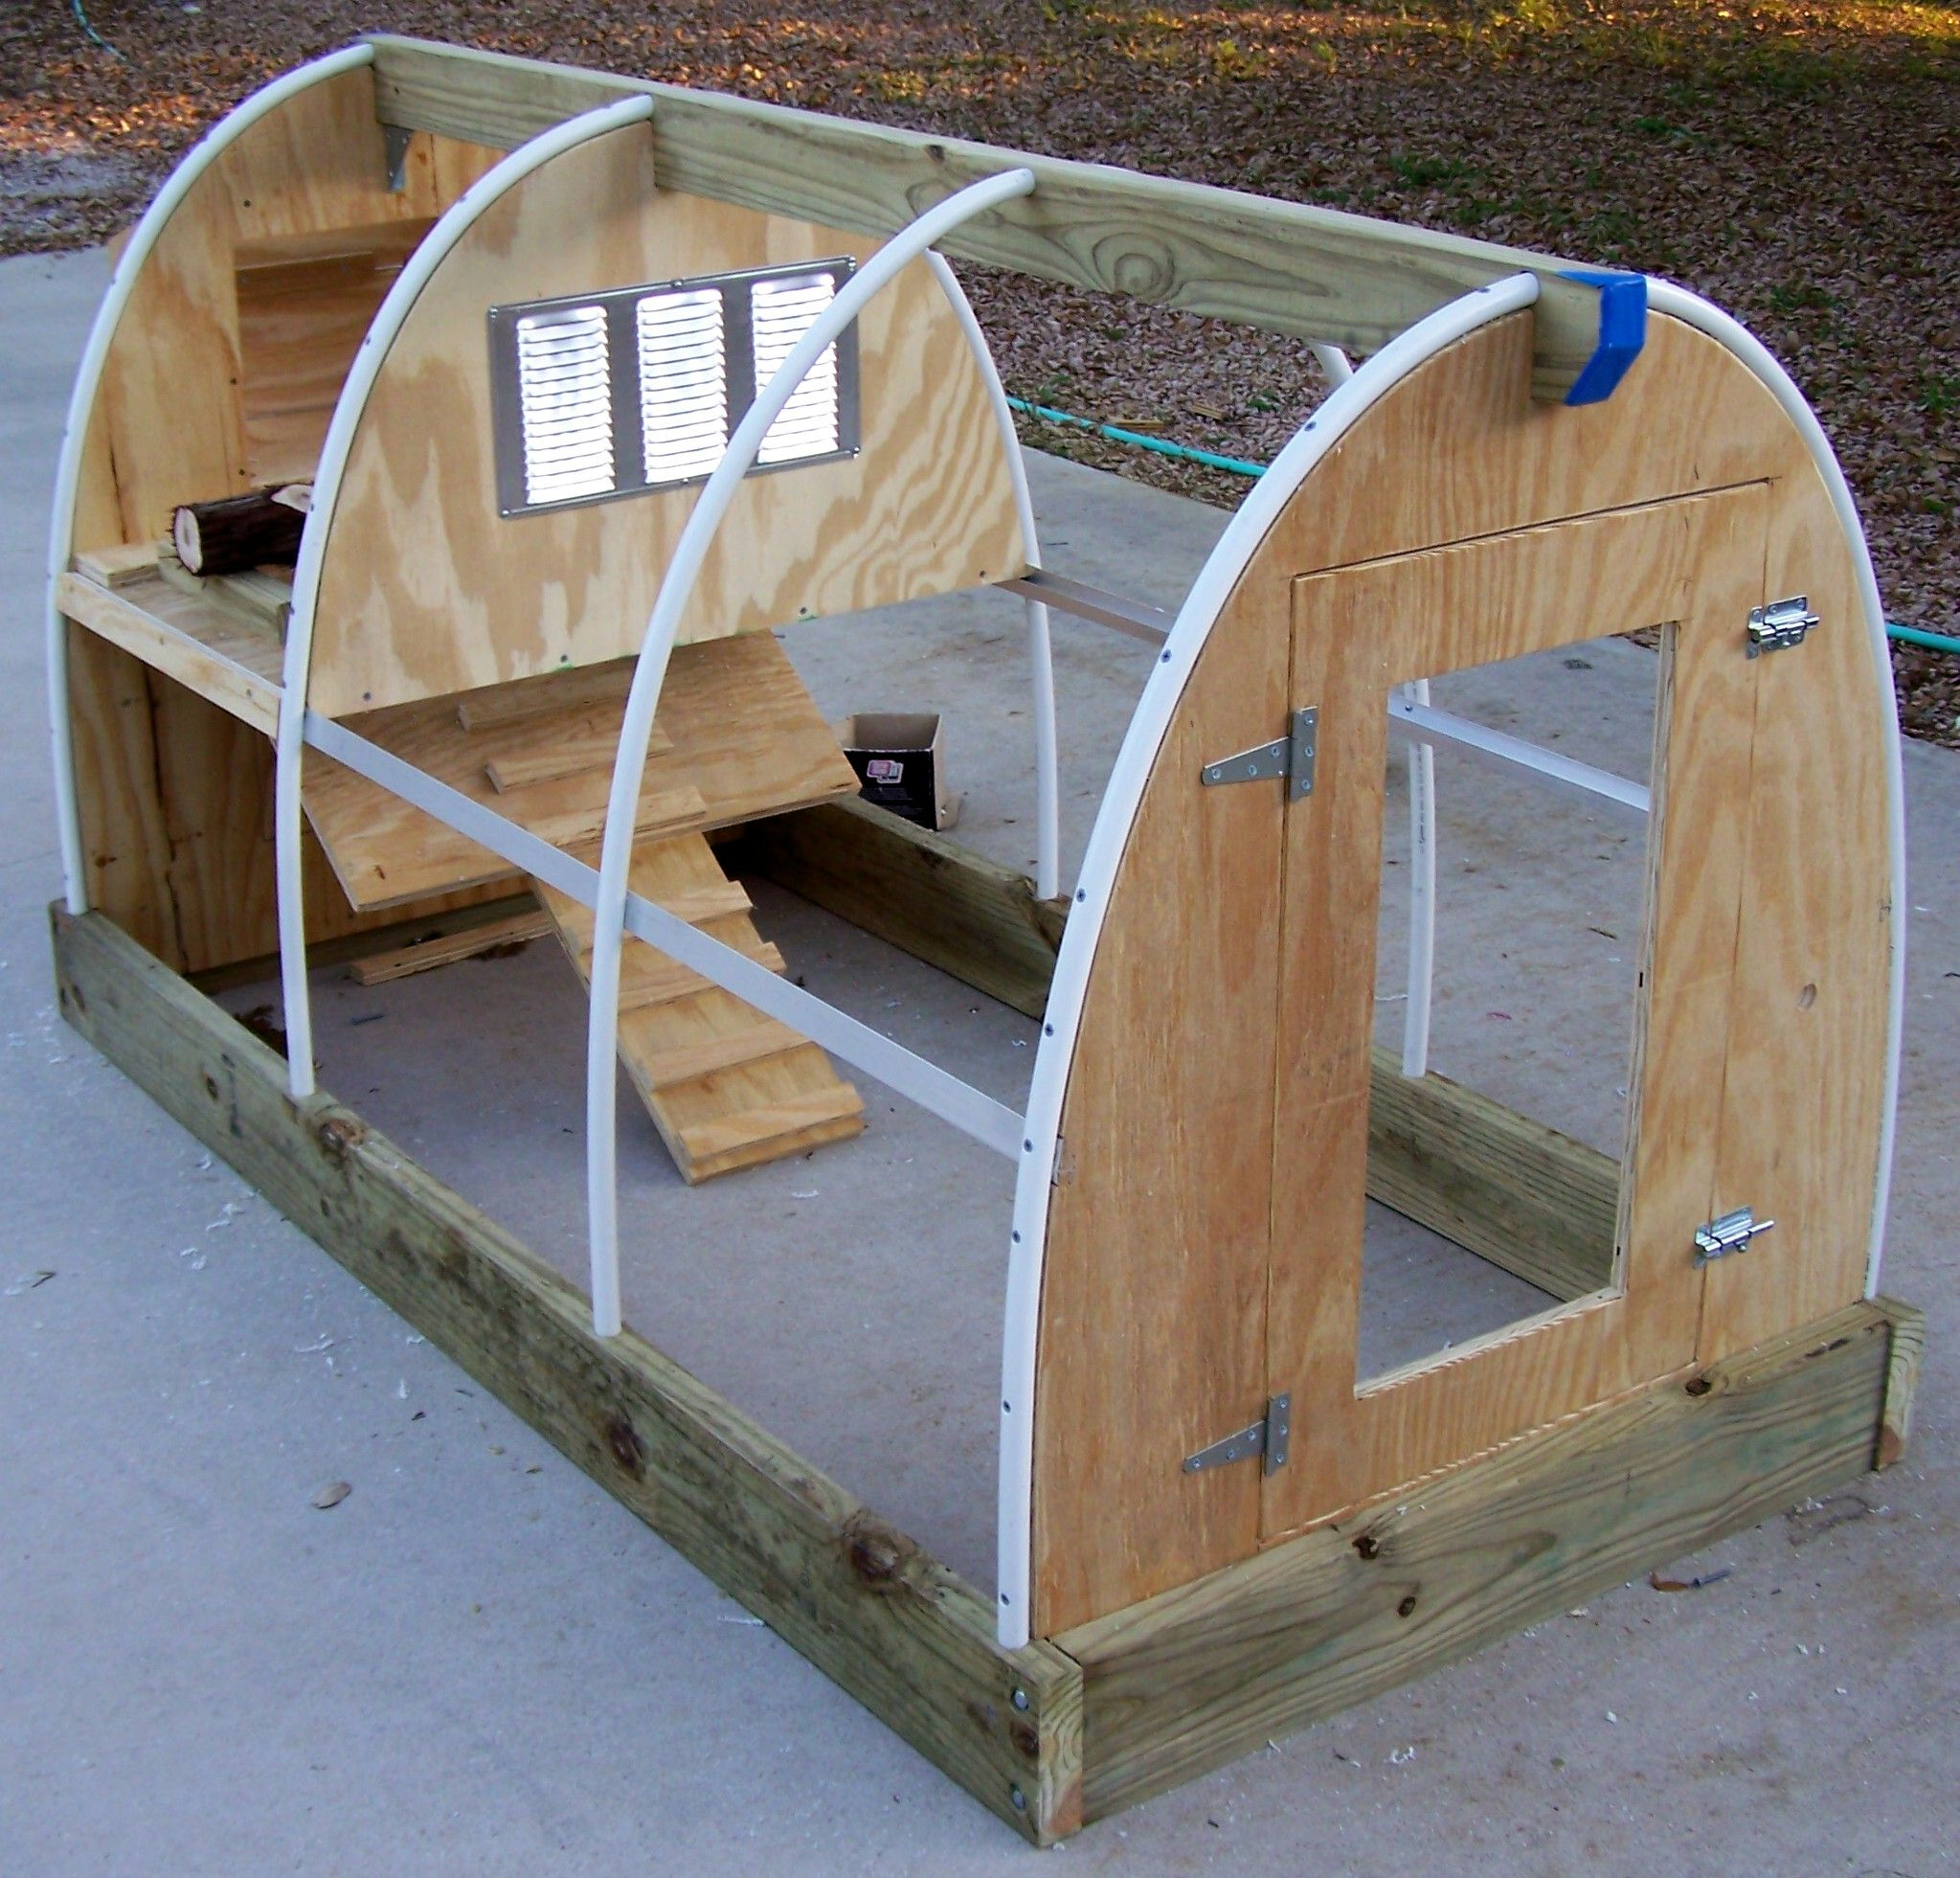 Diy chicken coops plans that are easy to build diy for Diy movable chicken coop